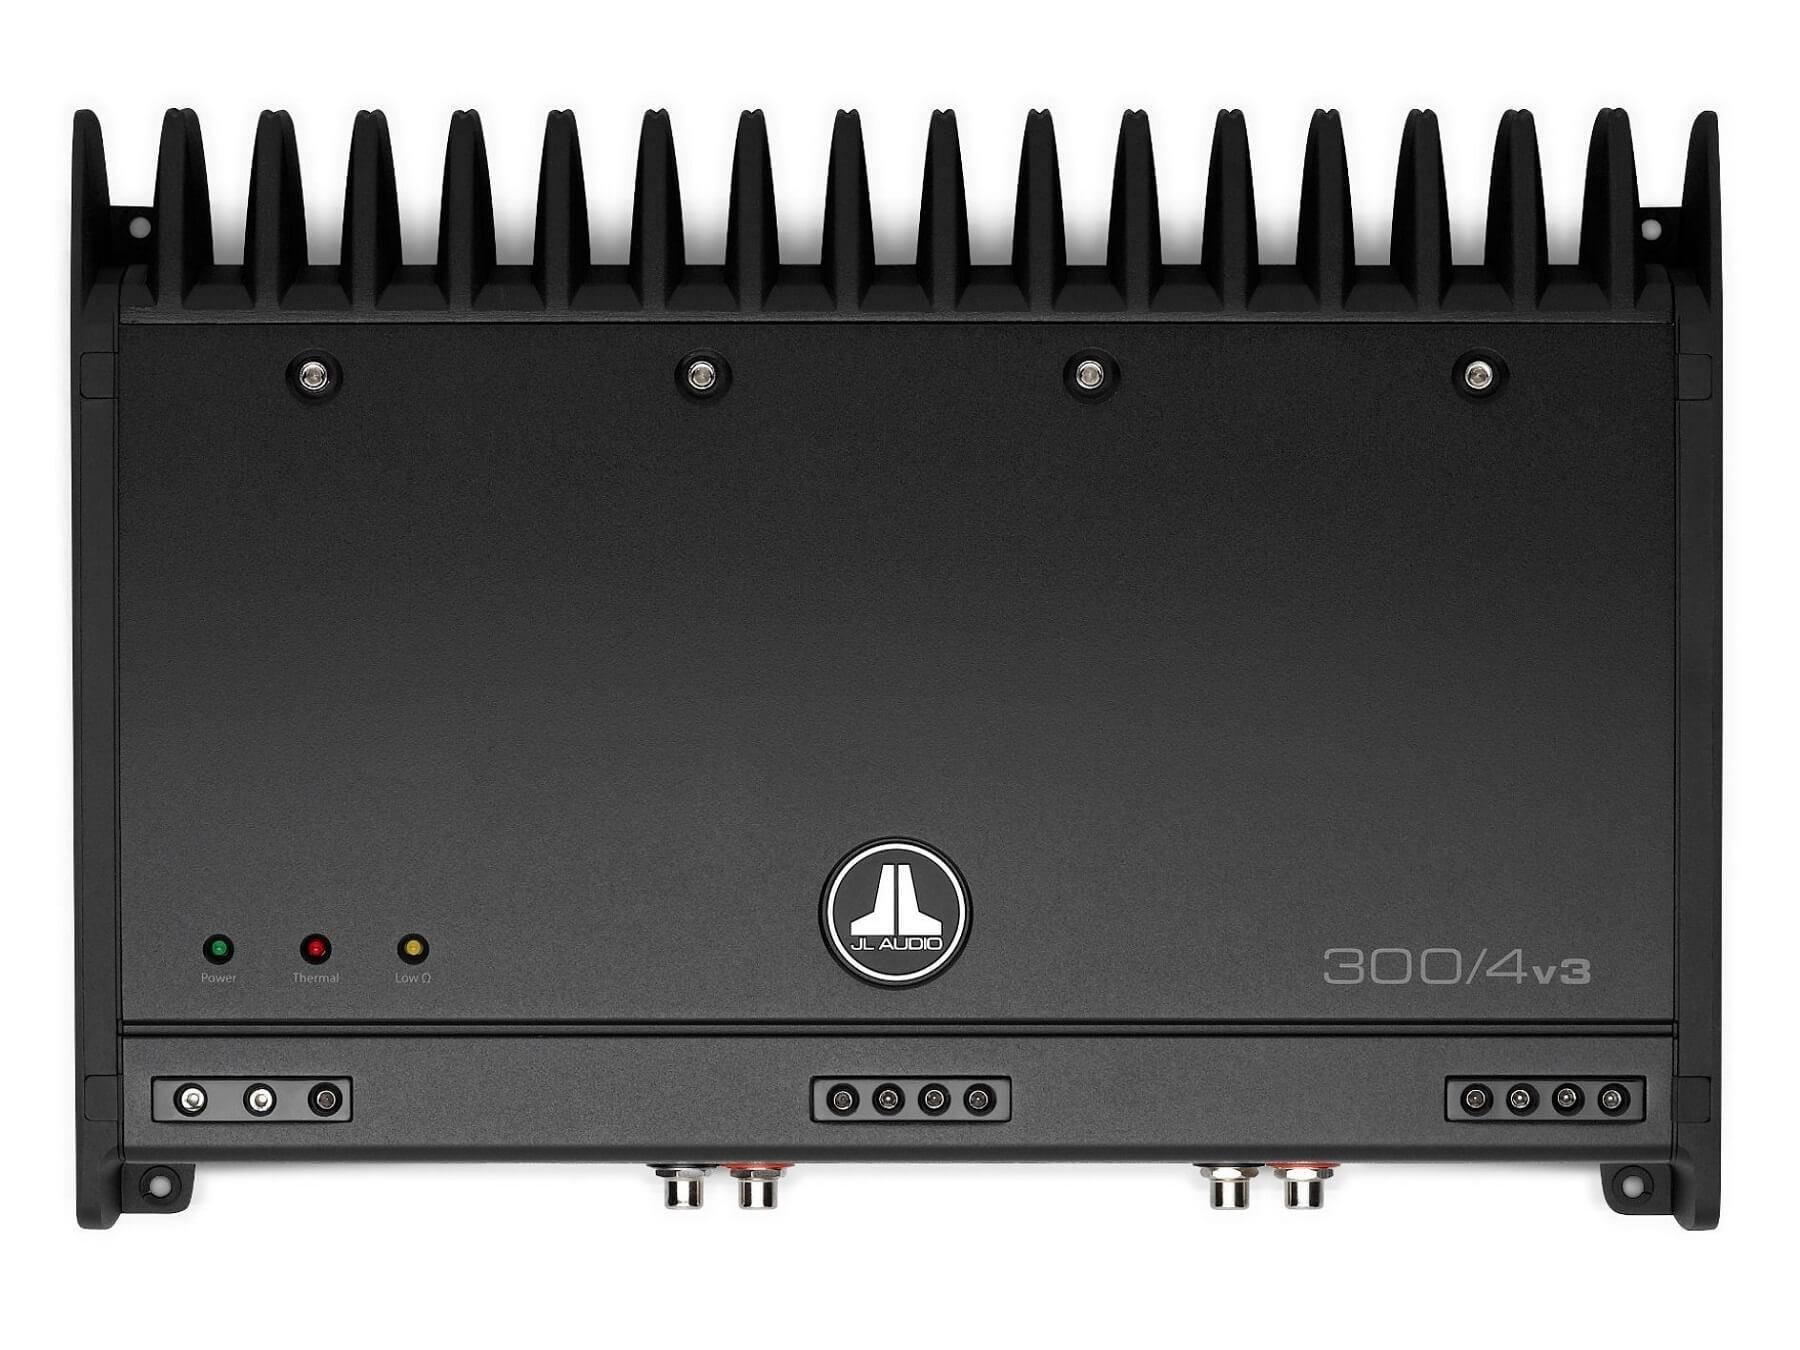 JL Audio Slash v3 300/4v3 - 4 Channel Class A/B Amplifier - 2